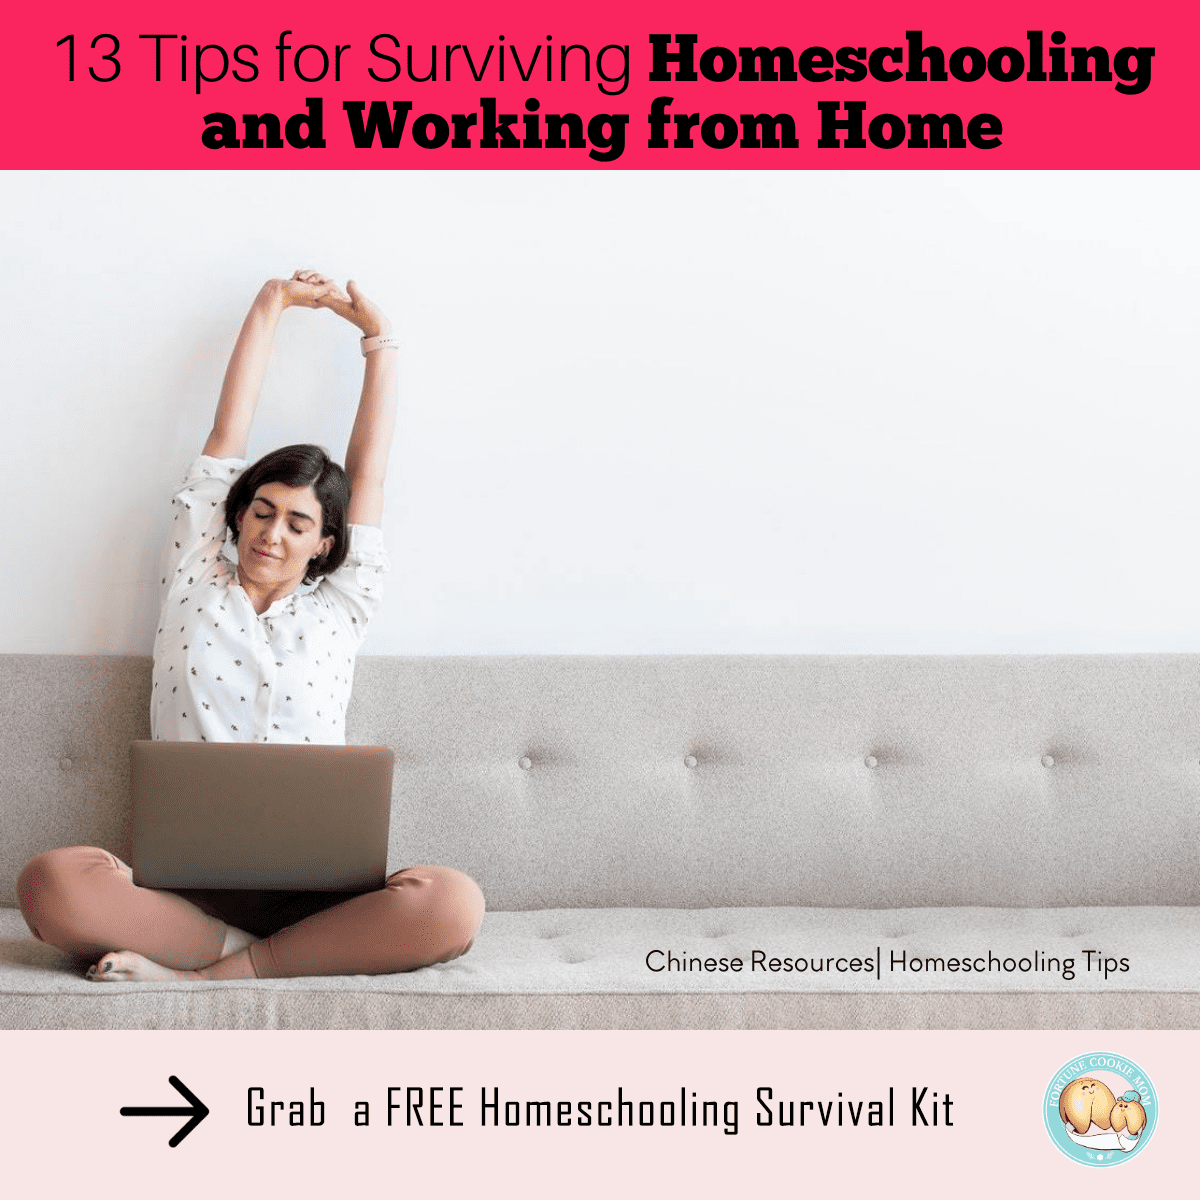 13 Tips for Surviving Both Homeschooling and Working from Home